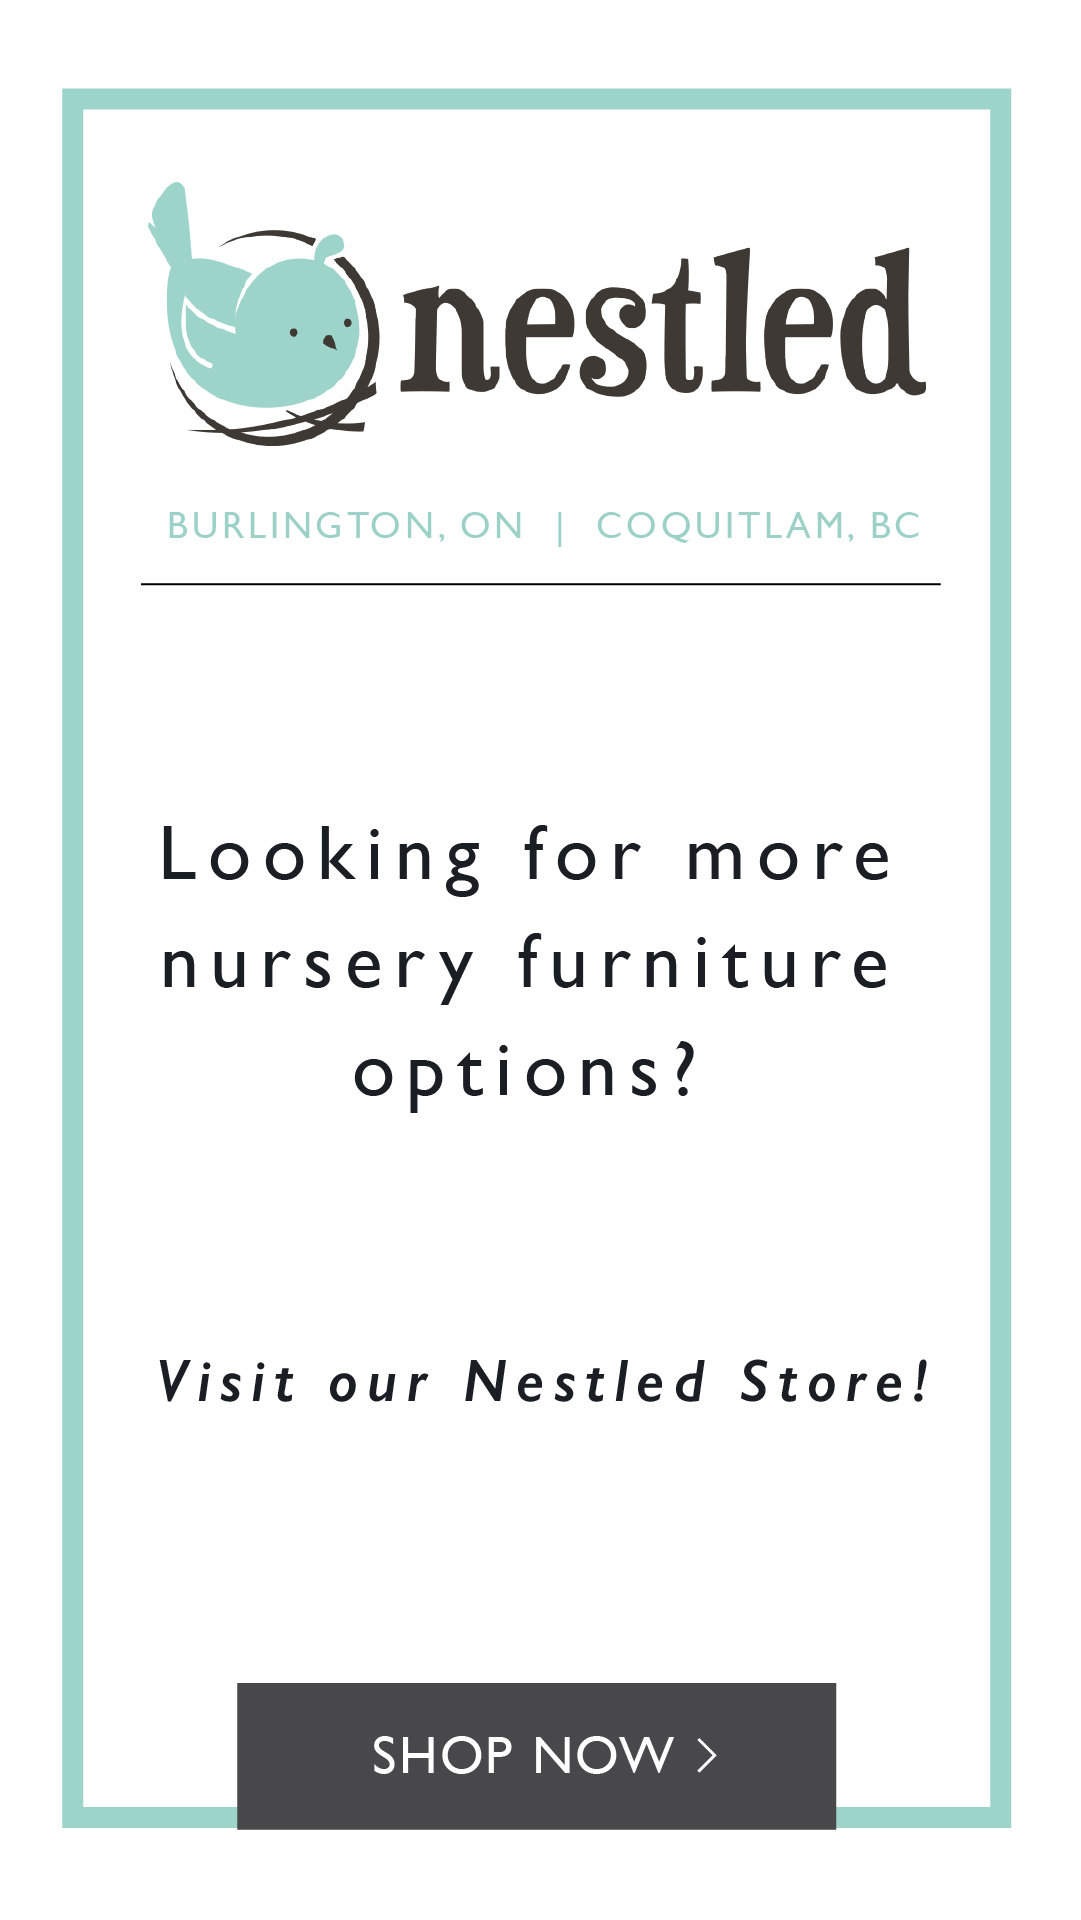 Build the nursery of your dreams with gliders, cribs, dressers from nestled.ca